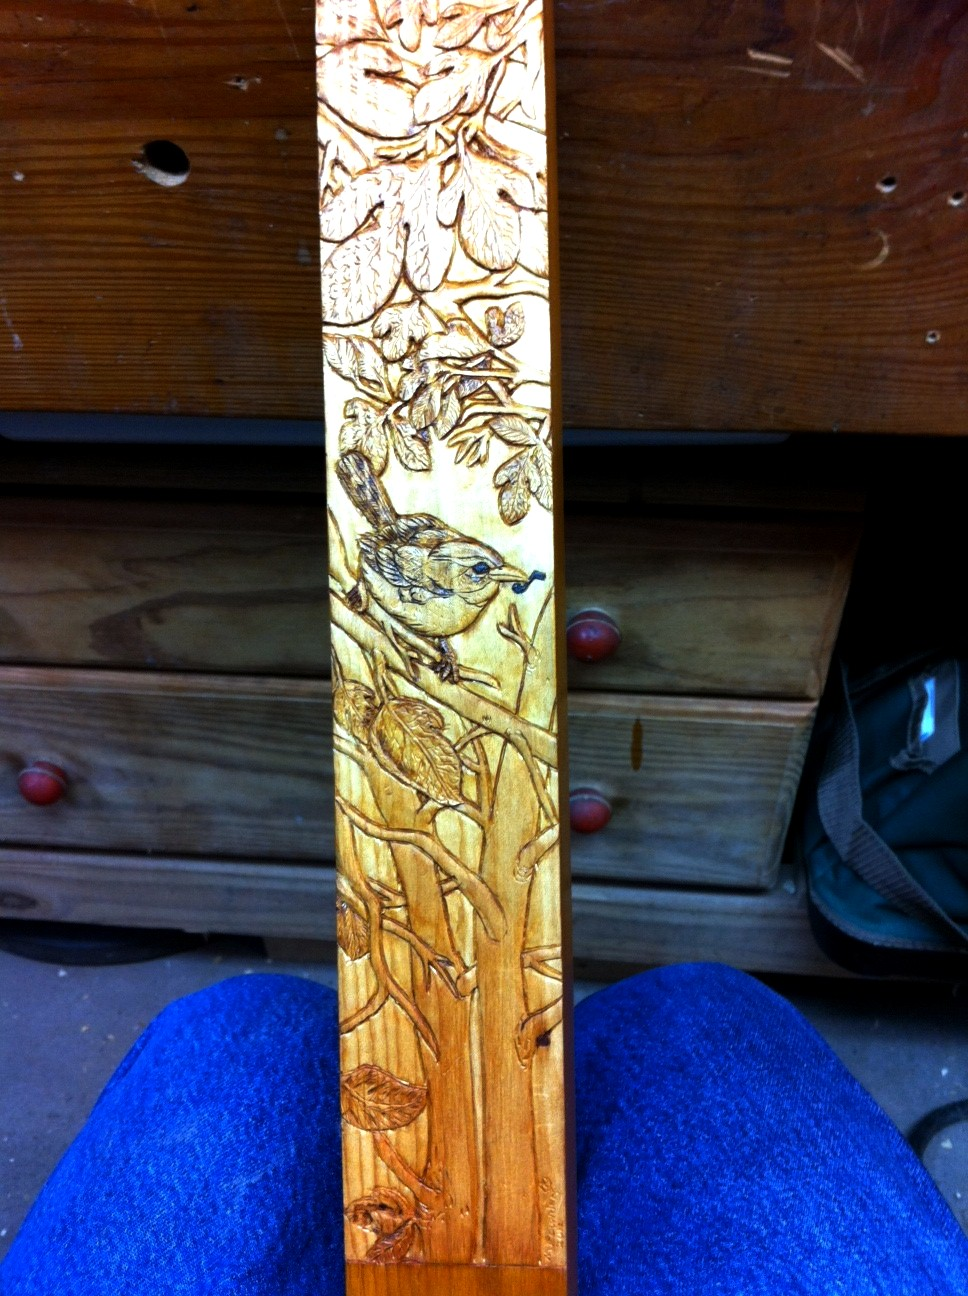 A carving for the birdsongs woodcarving illustrated